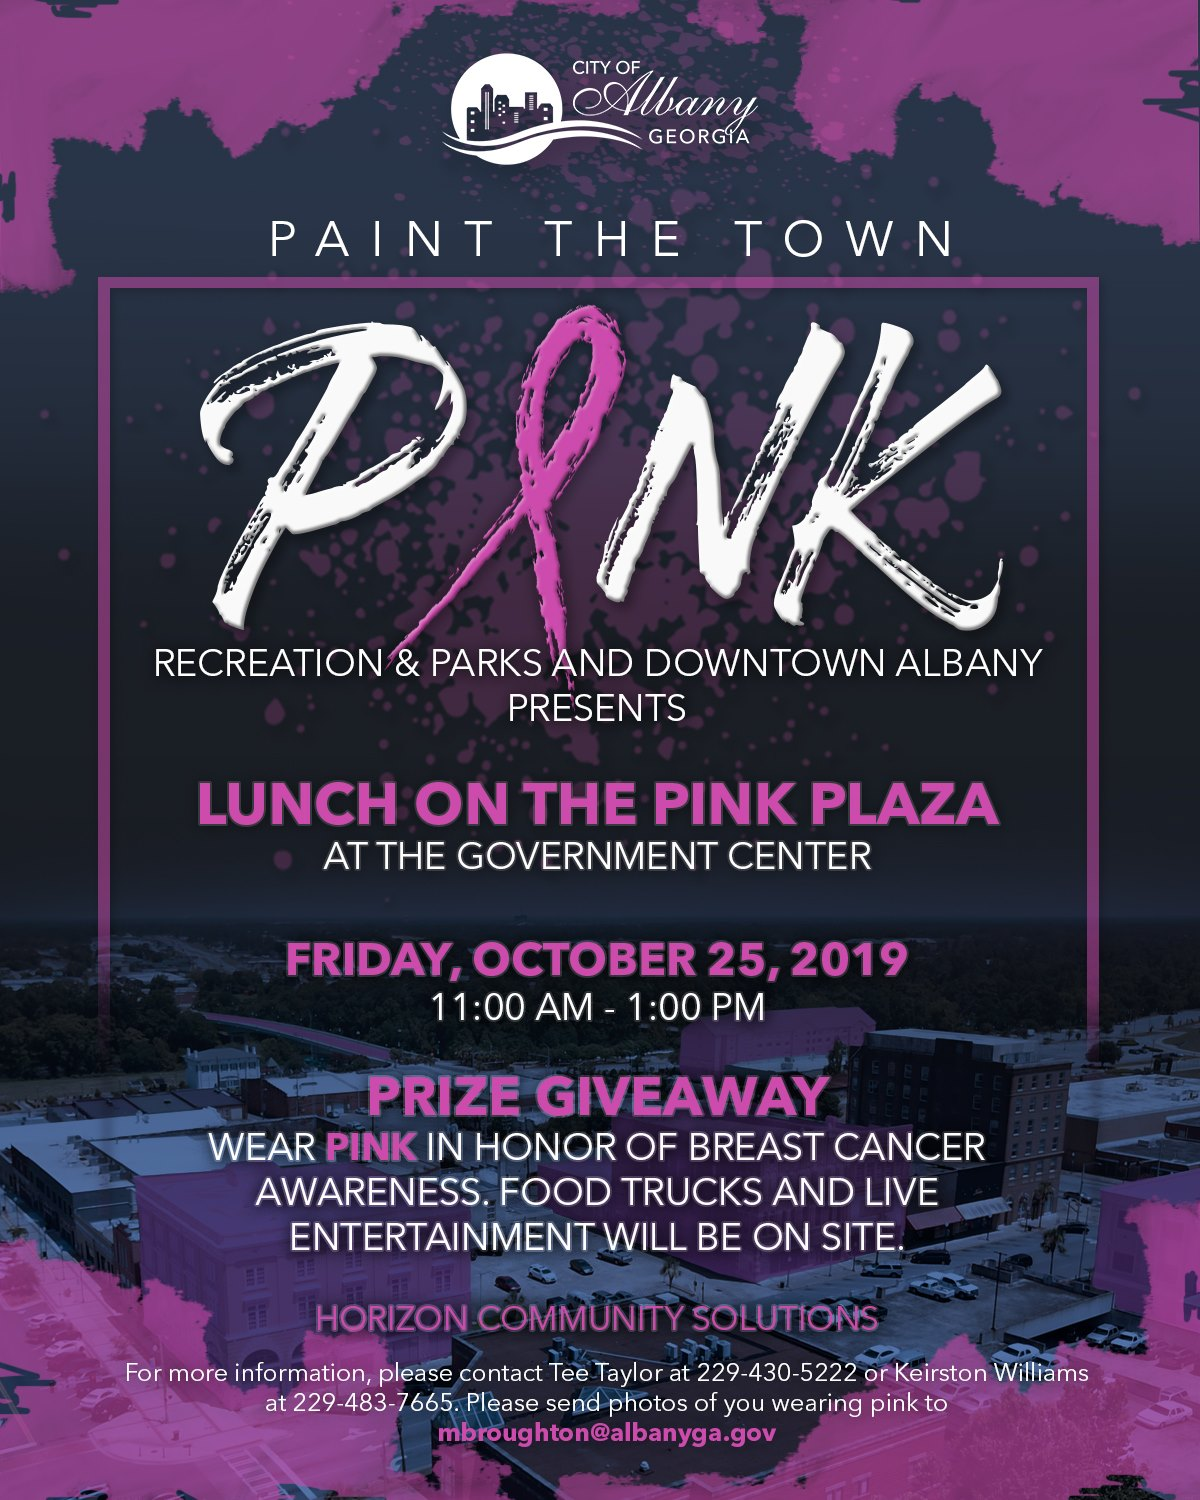 Paint the Town Pink: Lunch on the Pink Plaza